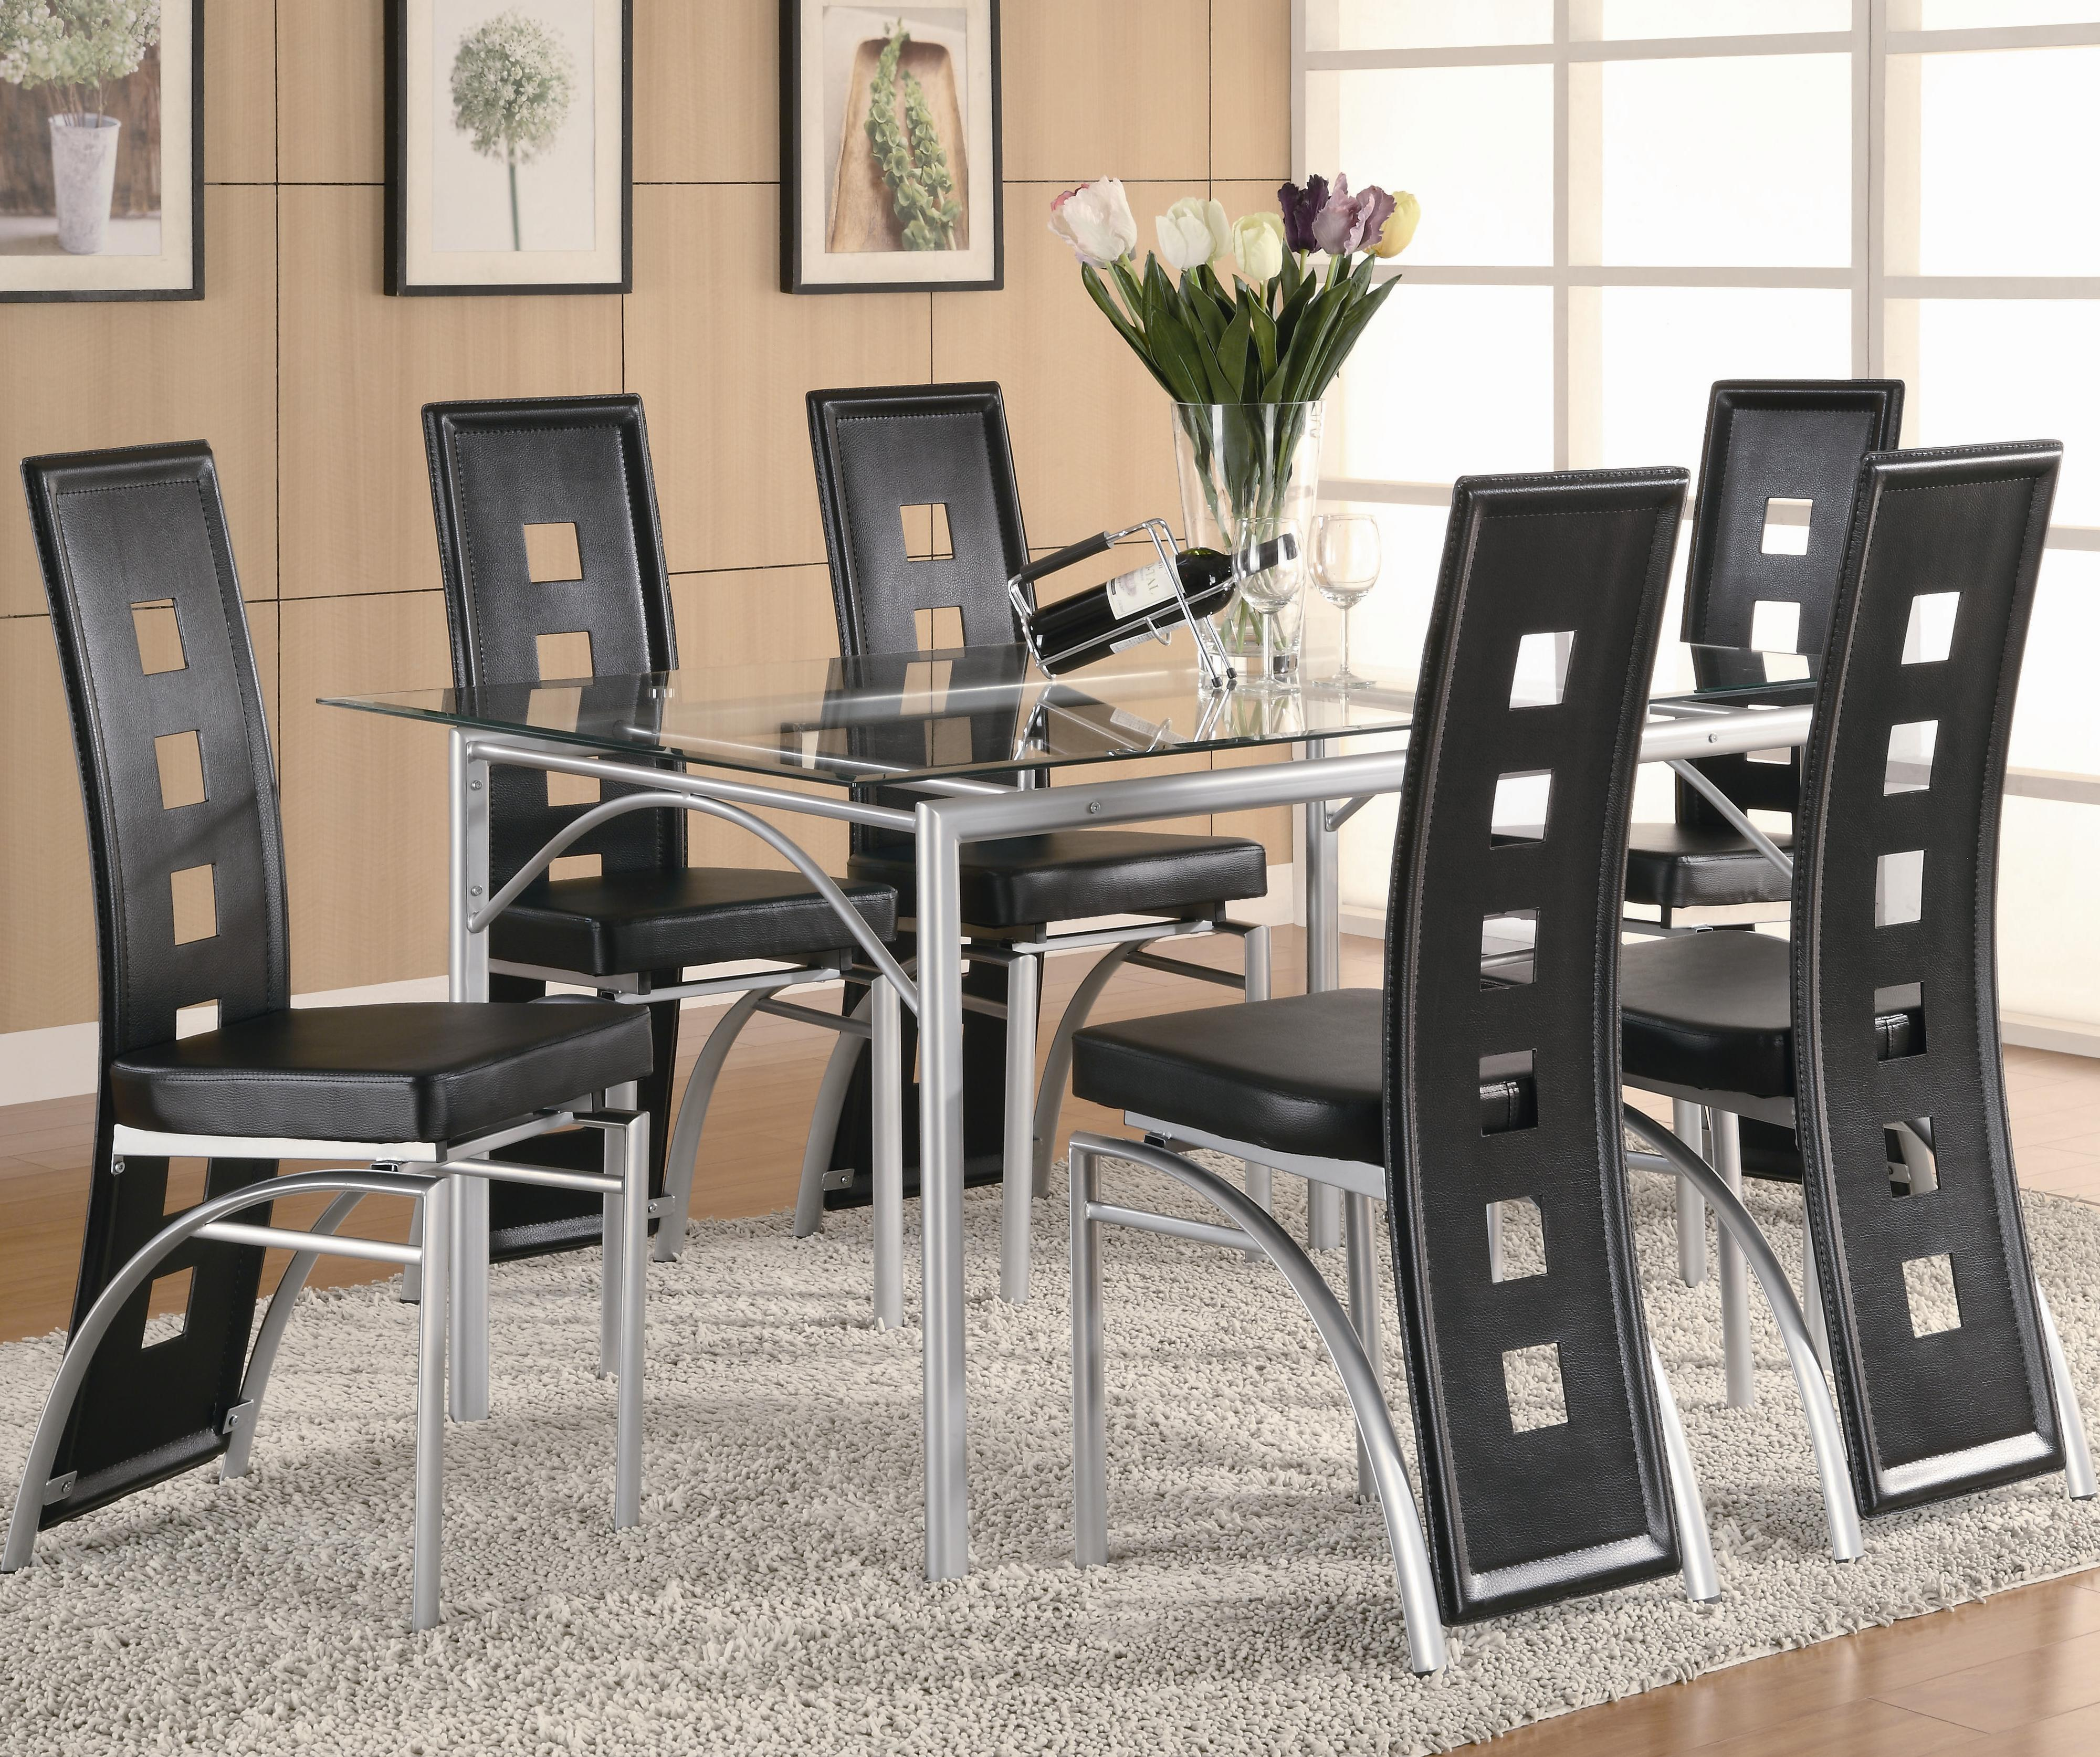 Black Dining Room Table And Chairs Los Feliz Contemporary Metal Table And Black Upholstered Chairs By Coaster At Value City Furniture